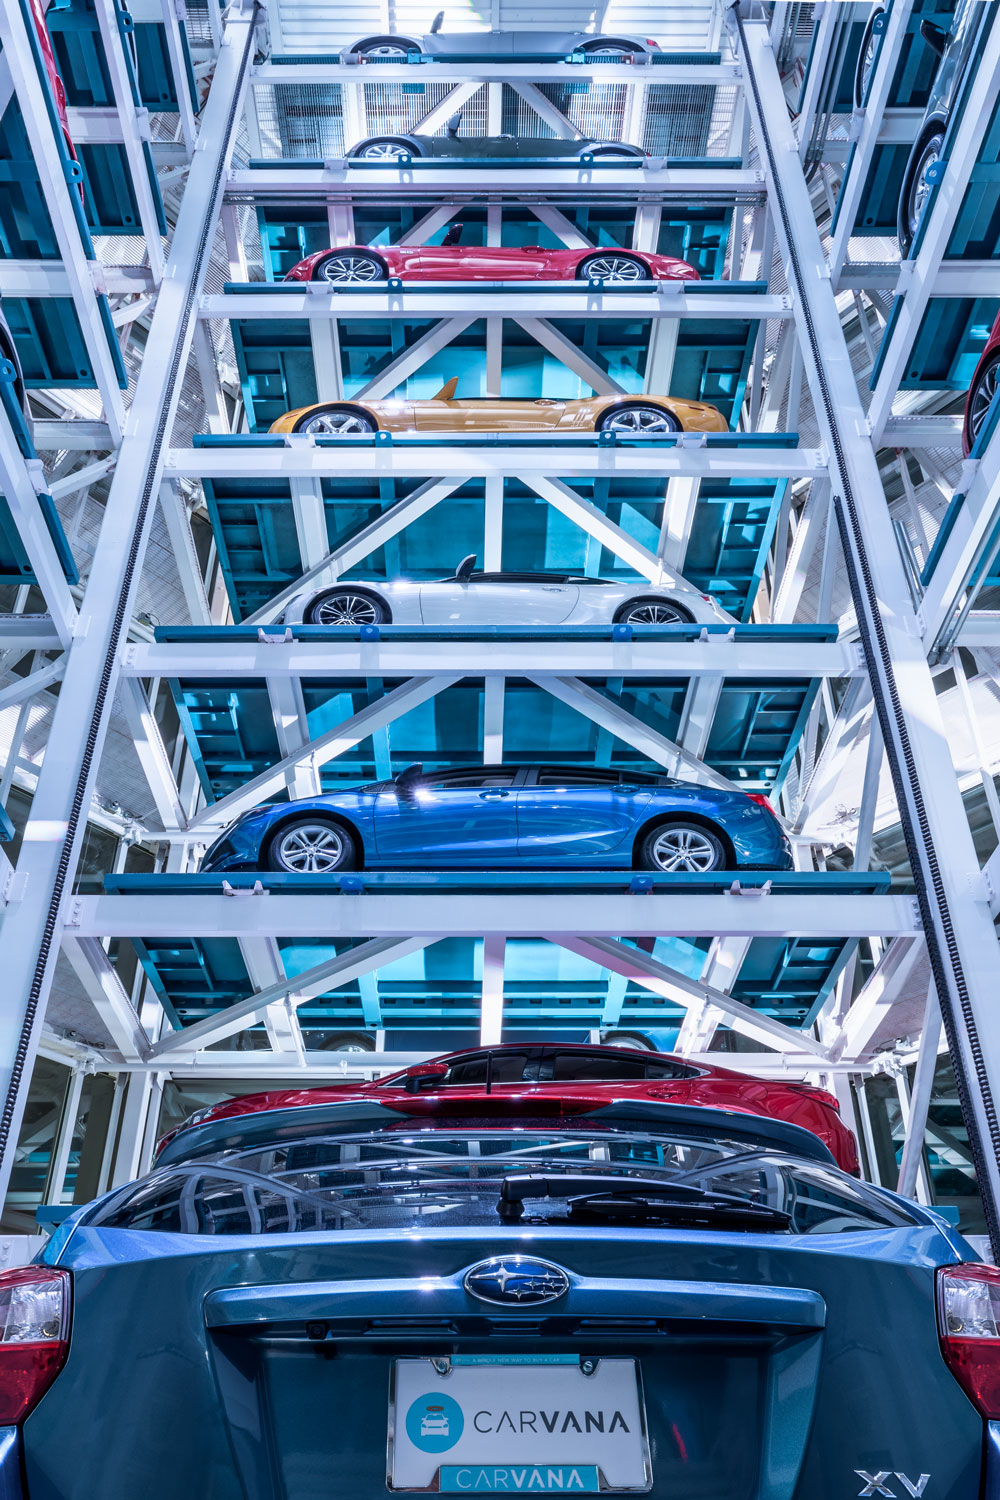 Inside view of Carvana's 8-story Car Vending Machine, Washington, DC. © harlan erskine 2018.